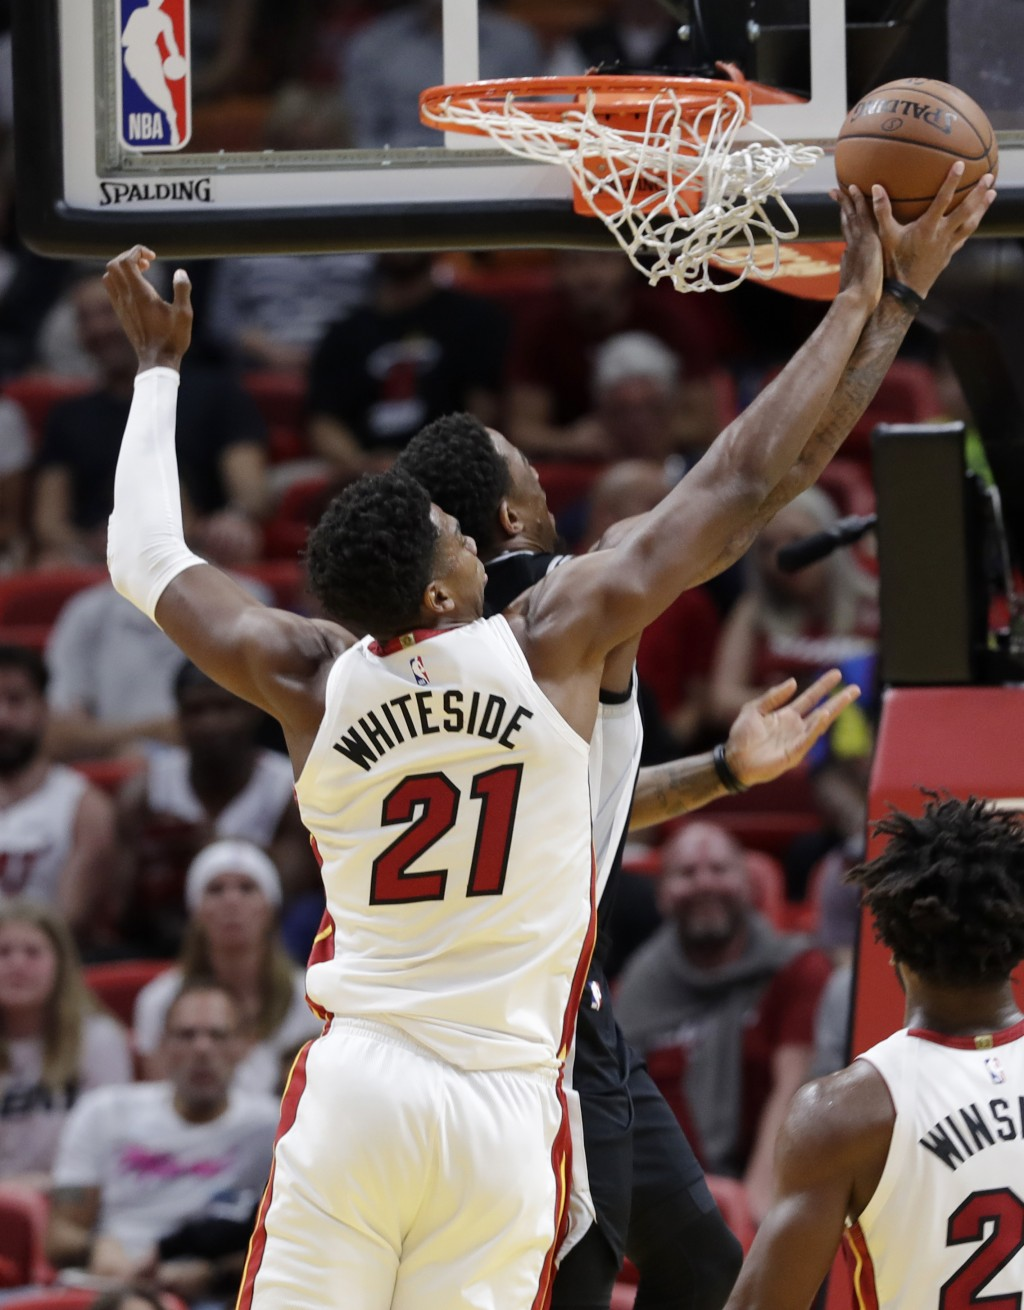 Miami Heat center Hassan Whiteside (21) blocks a shot by San Antonio Spurs guard DeMar DeRozan during the first half of an NBA basketball game, Wednes